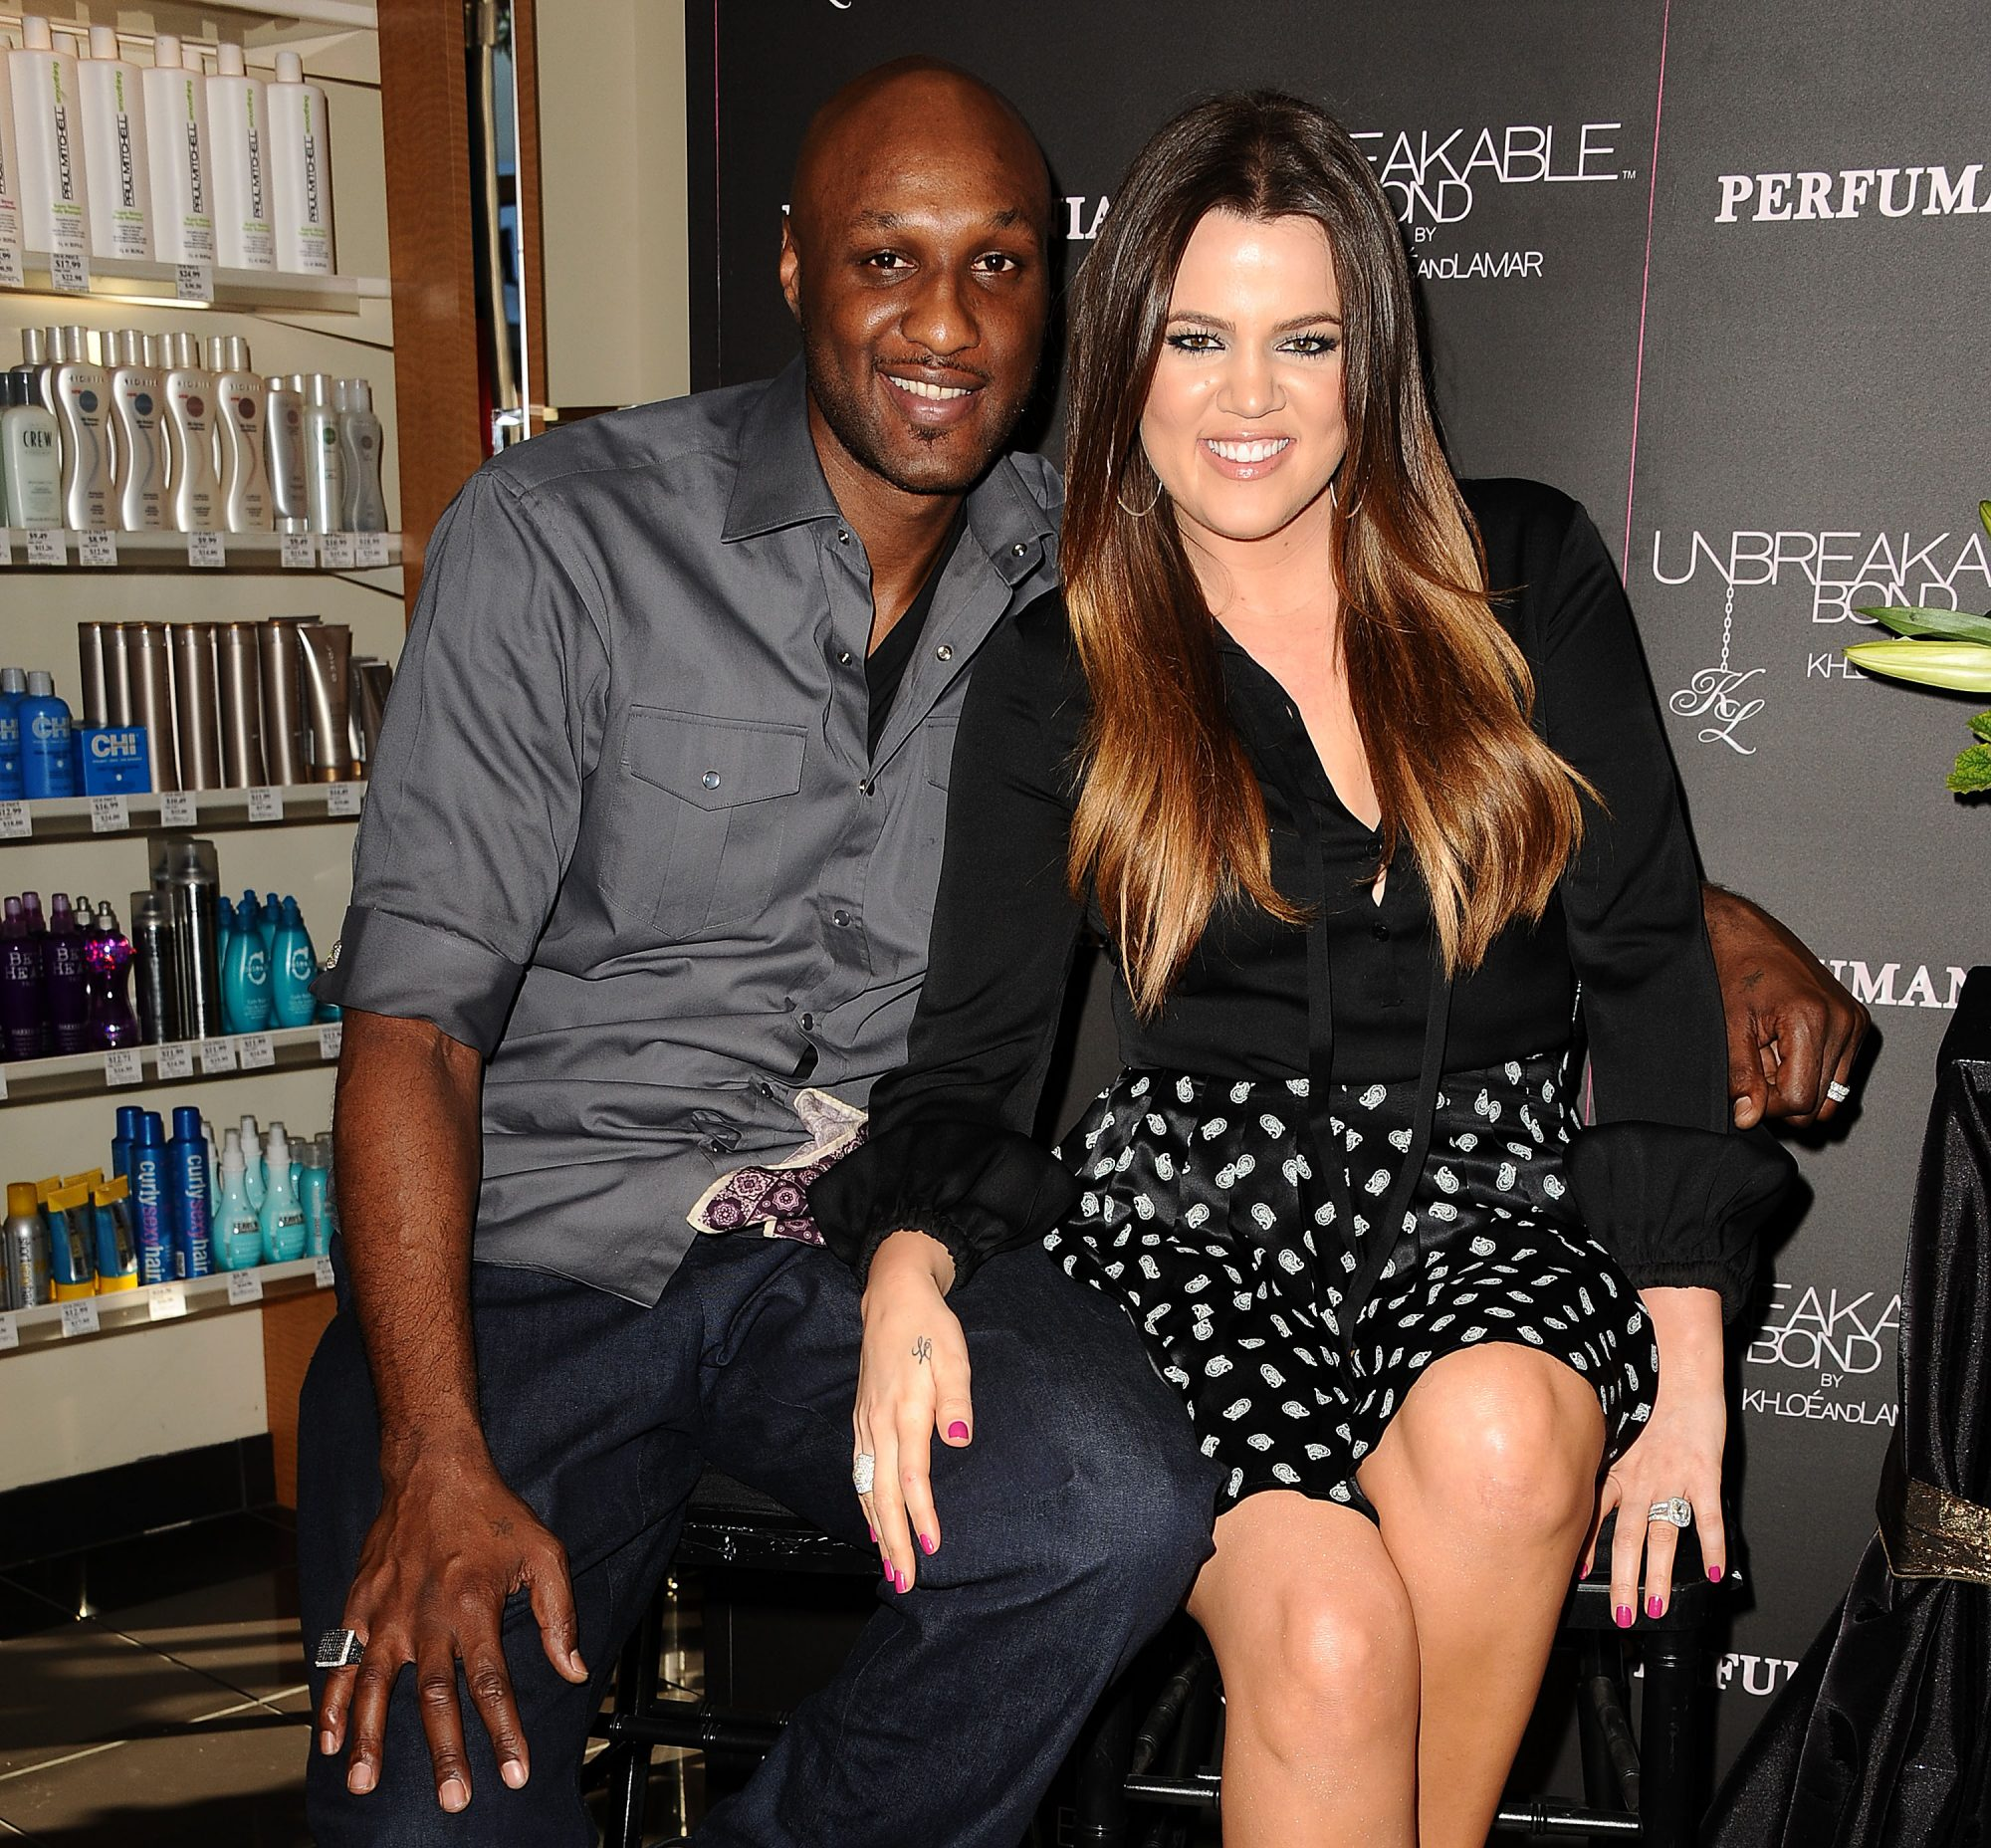 Khloe-and-Lamar1.jpg